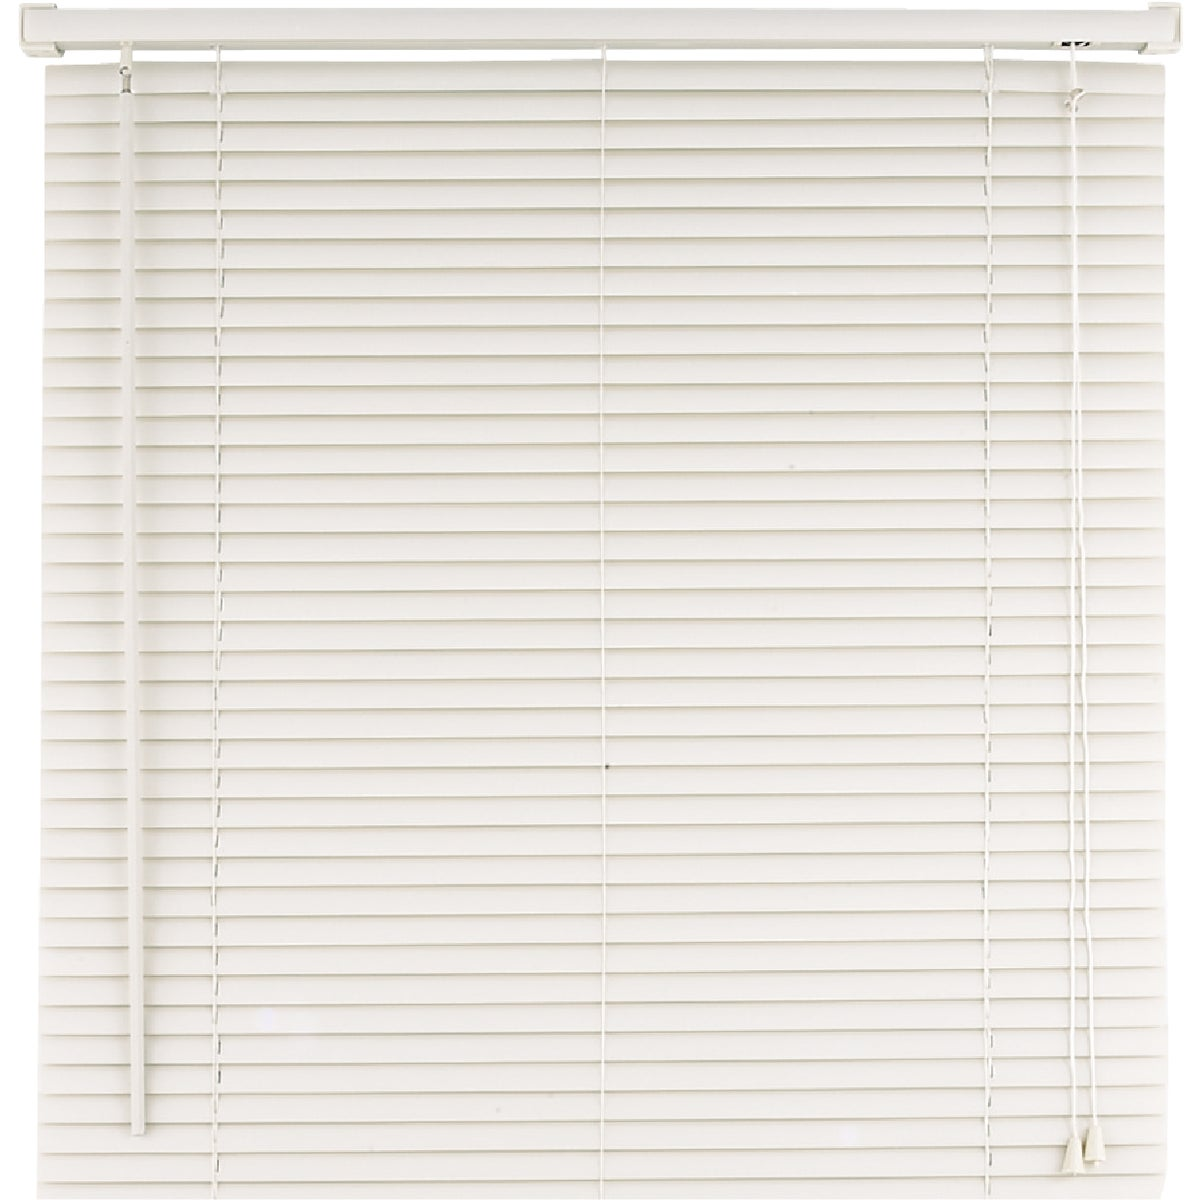 30X64 WHITE MINI BLIND - 3064-152 by Lotus Wind Incom